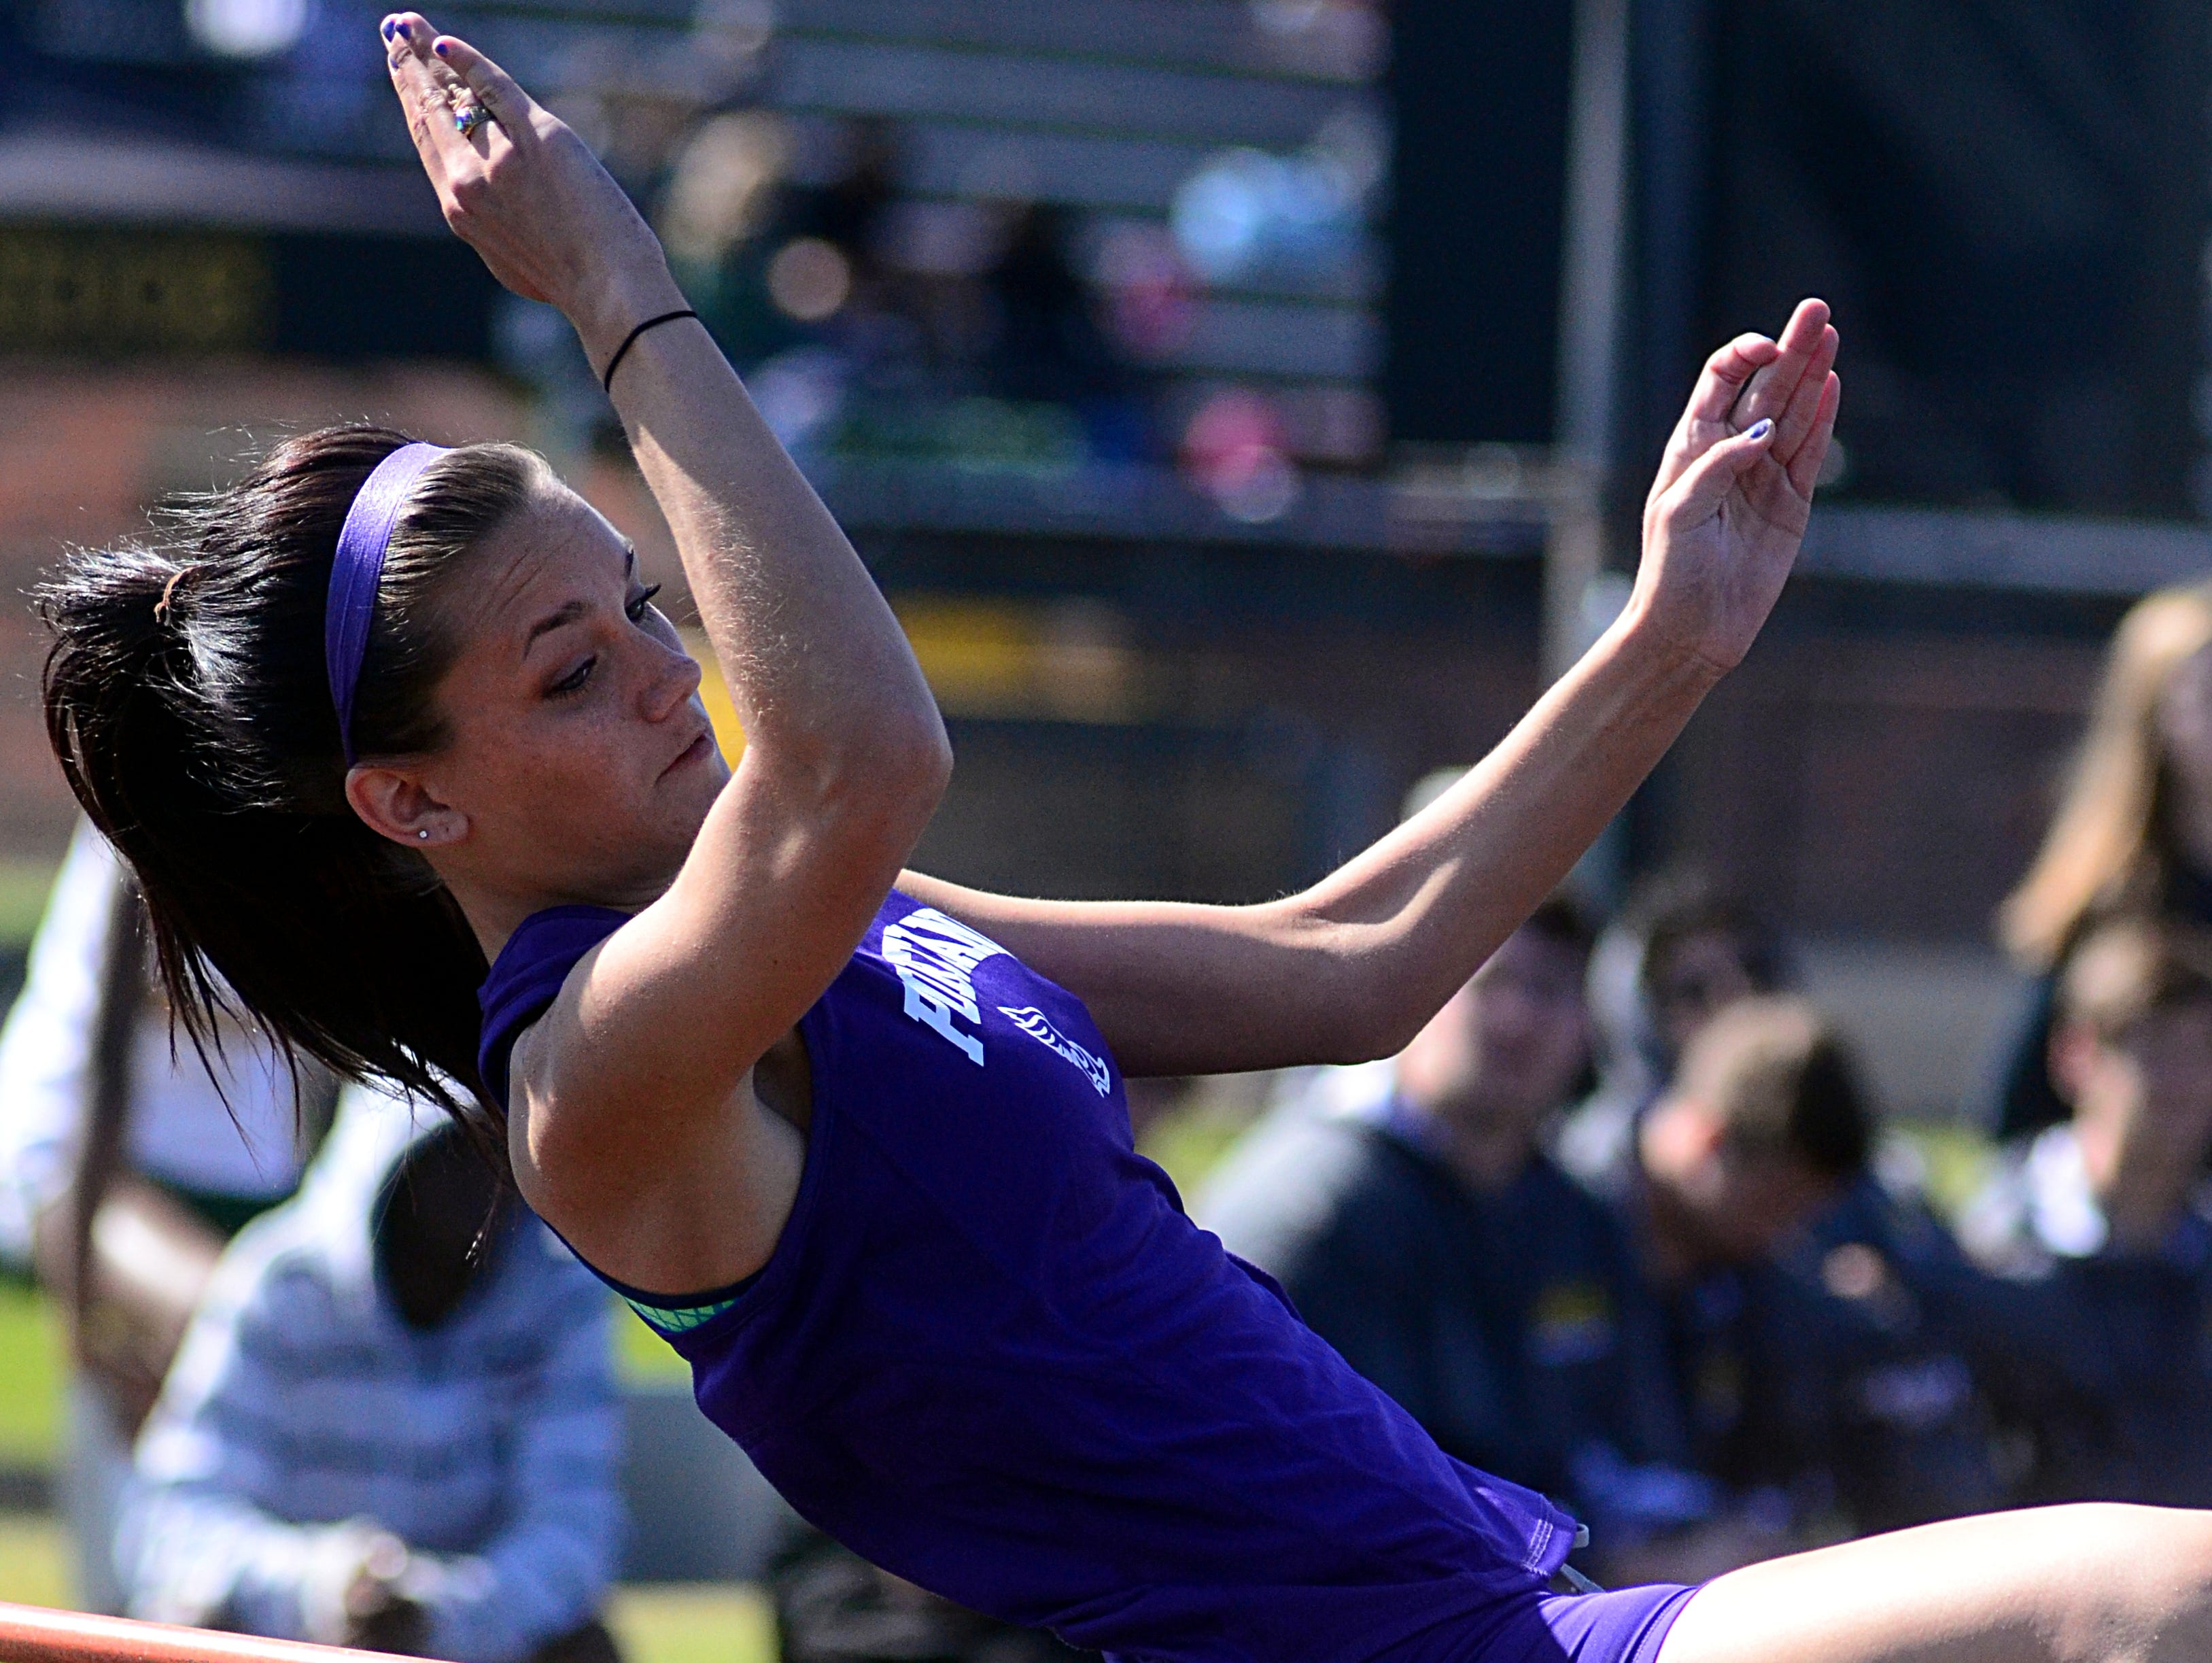 Portland High senior Sam England finished seventh in the girls' high jump, with a best effort of 4-4.